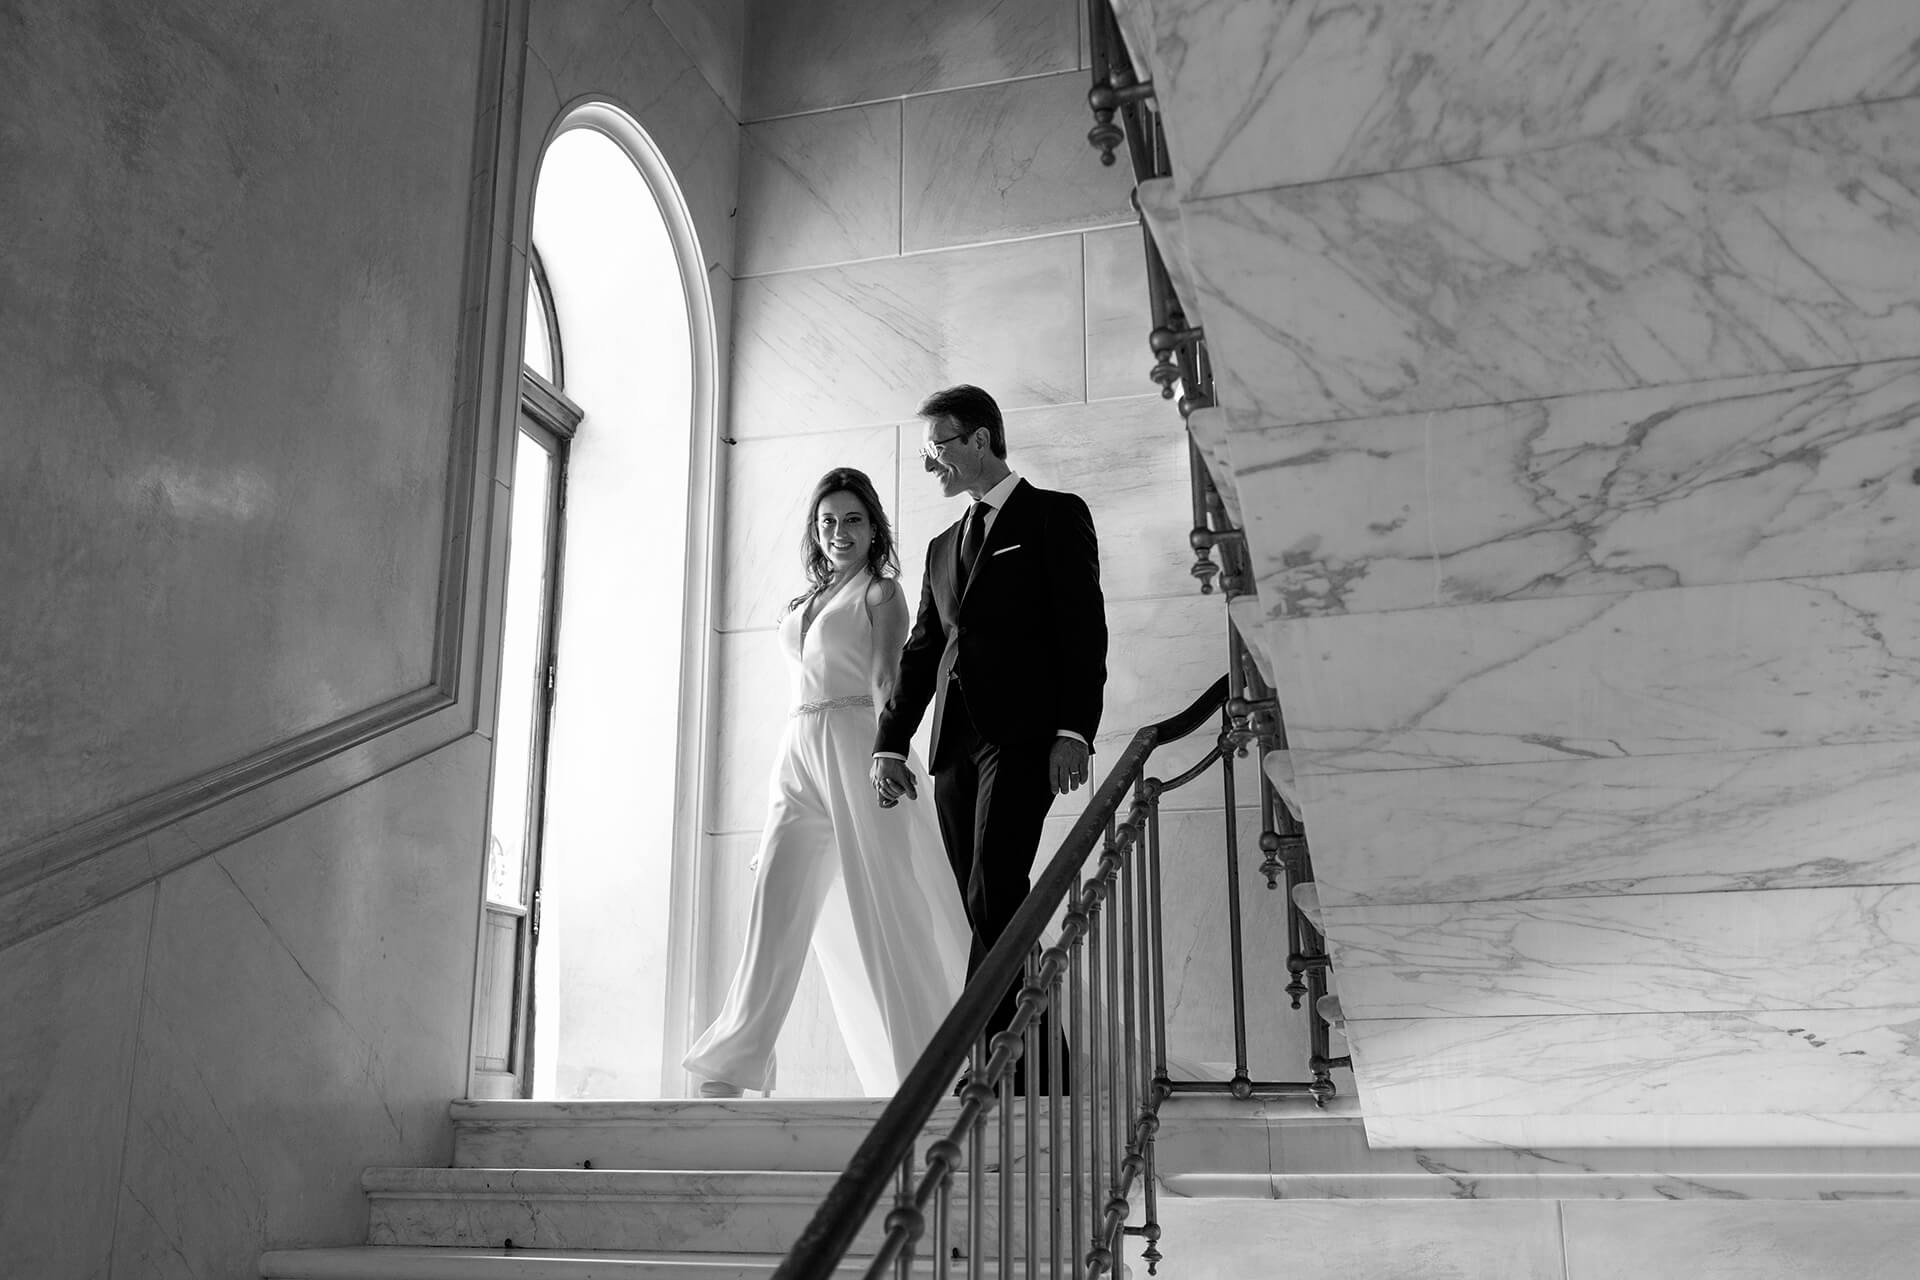 Palazzo Platamone, Trapani Wedding Photography | Black and white image of the newlyweds descending the stairs